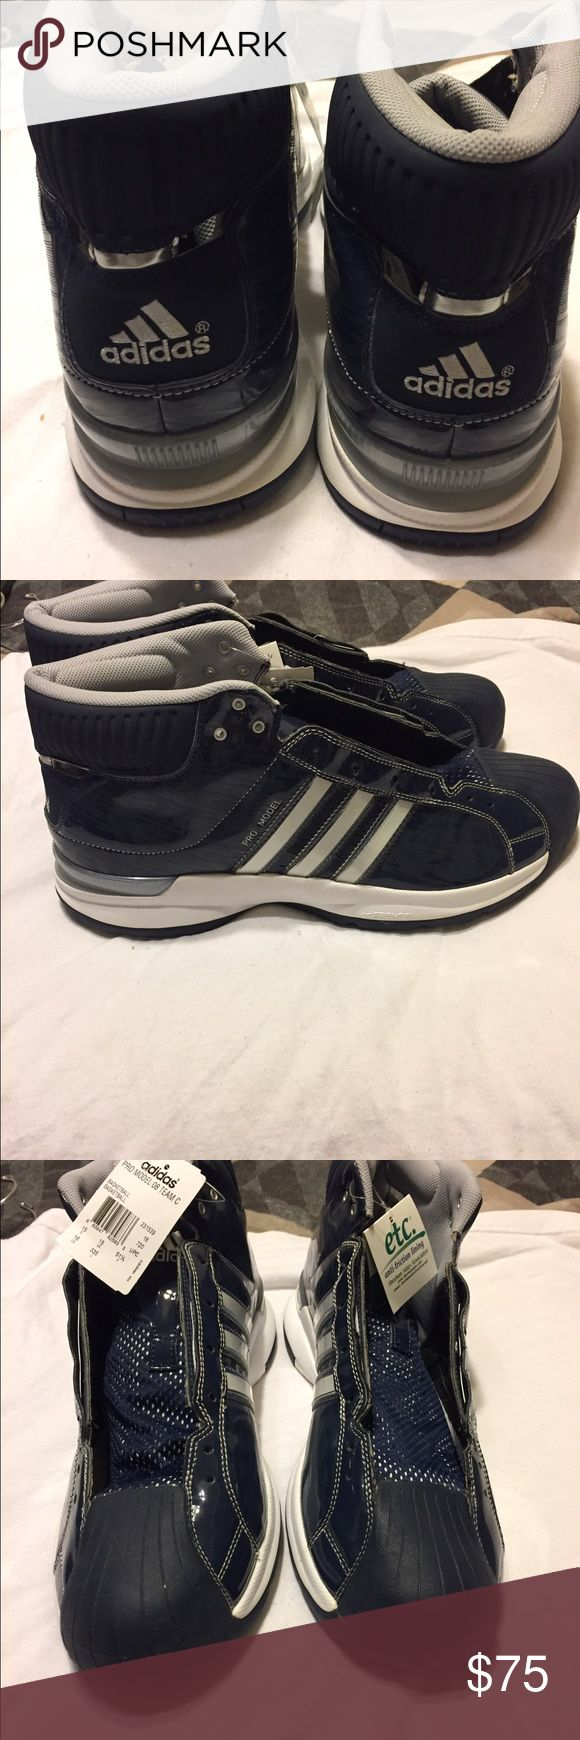 Men's Adidas Brand new never worn with original tags size 16 men's Adidas basketball shoes. Pro Model 08. Missing shoe strings. Adidas Shoes Athletic Shoes